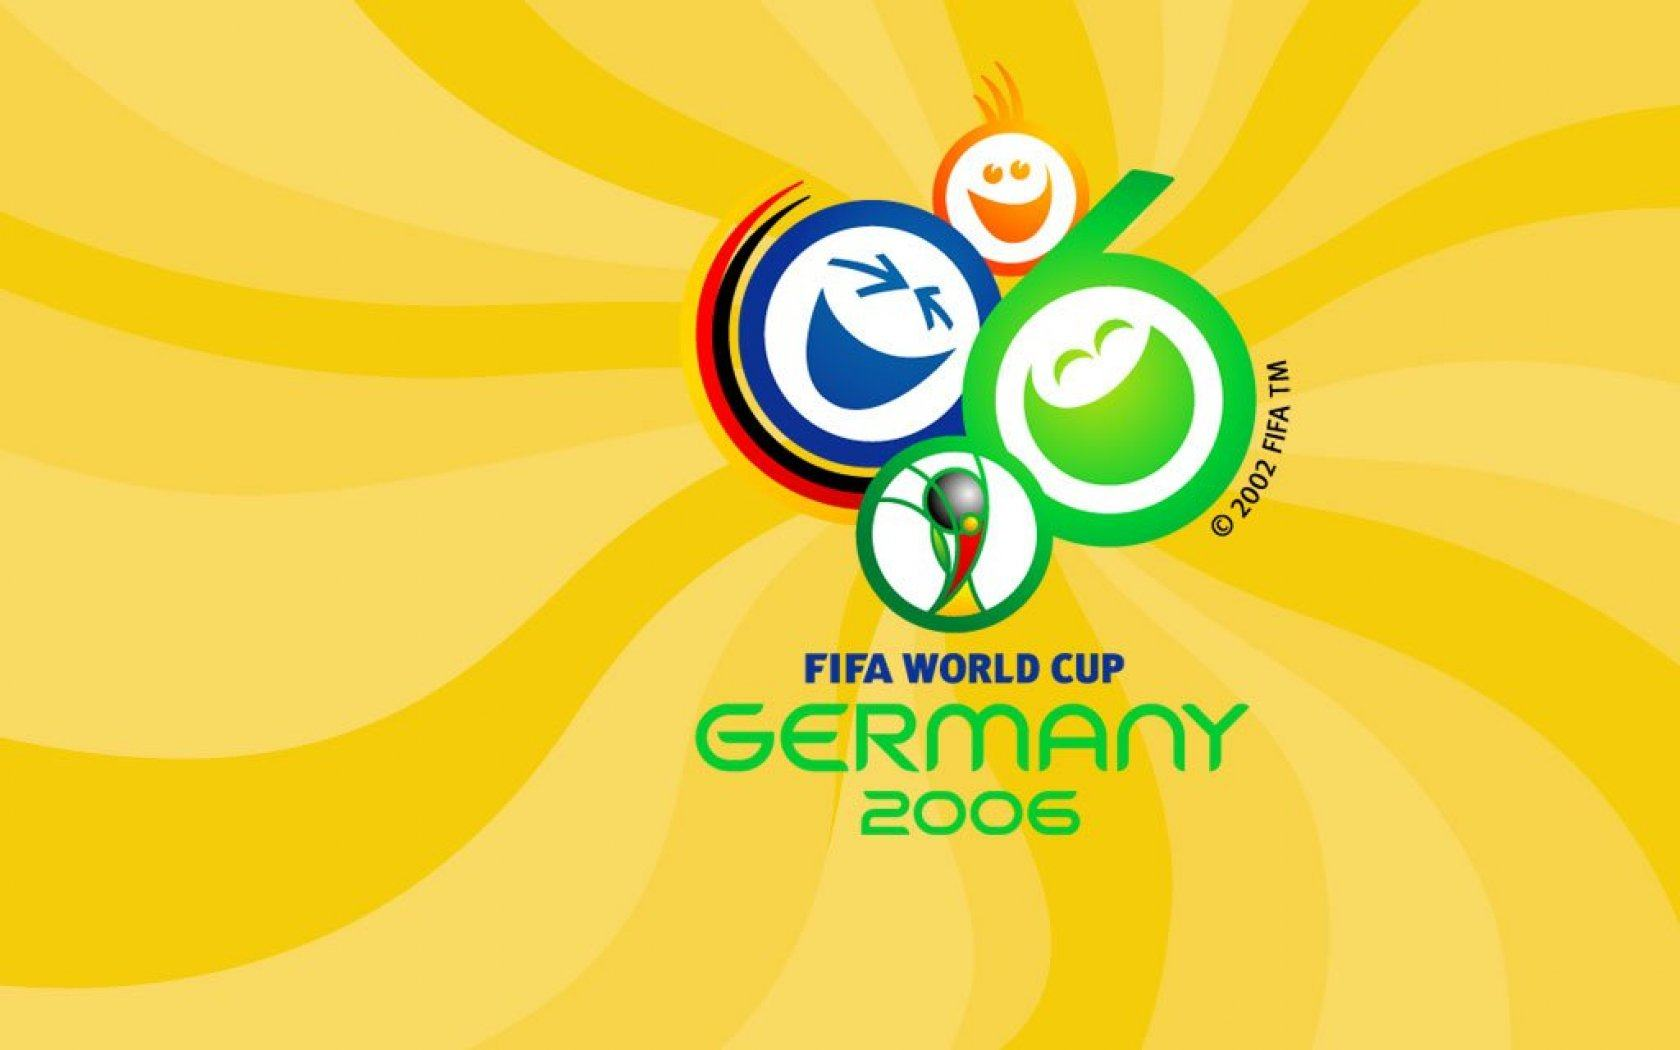 ���� World Cup Yellow 1680x1050